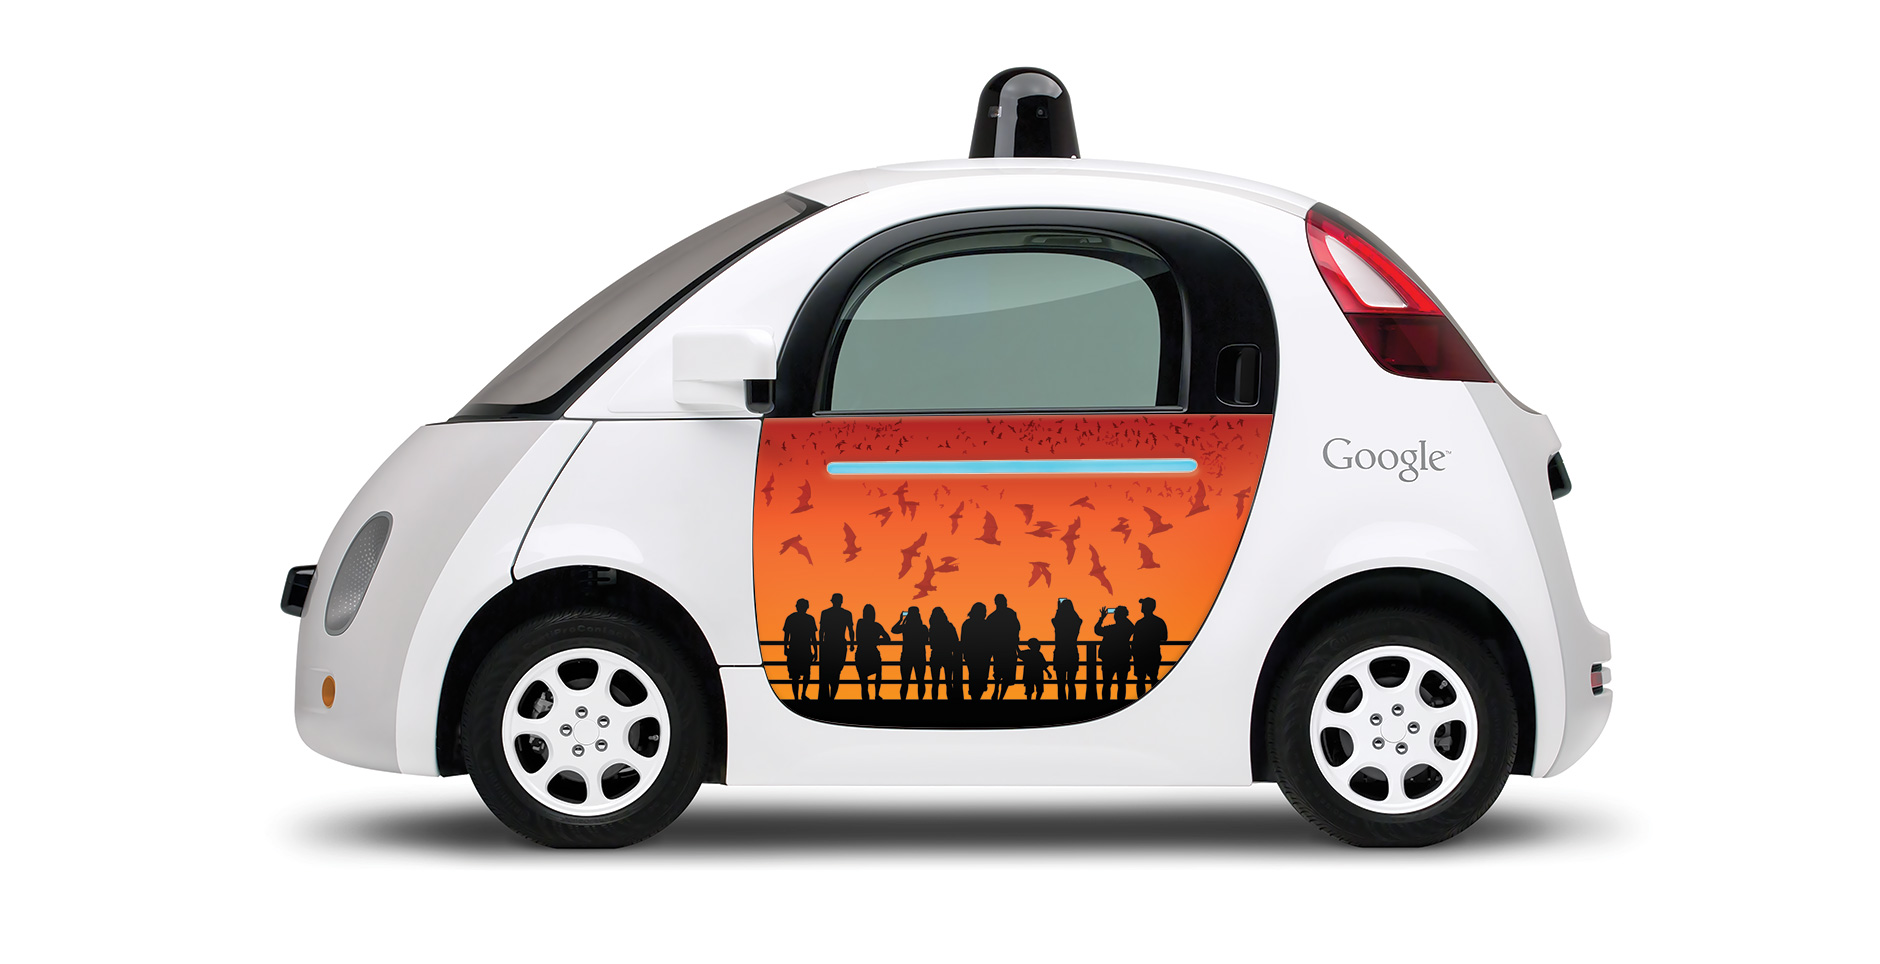 Austin Artist Catherine Malloy S Design For The Google Prototype Car